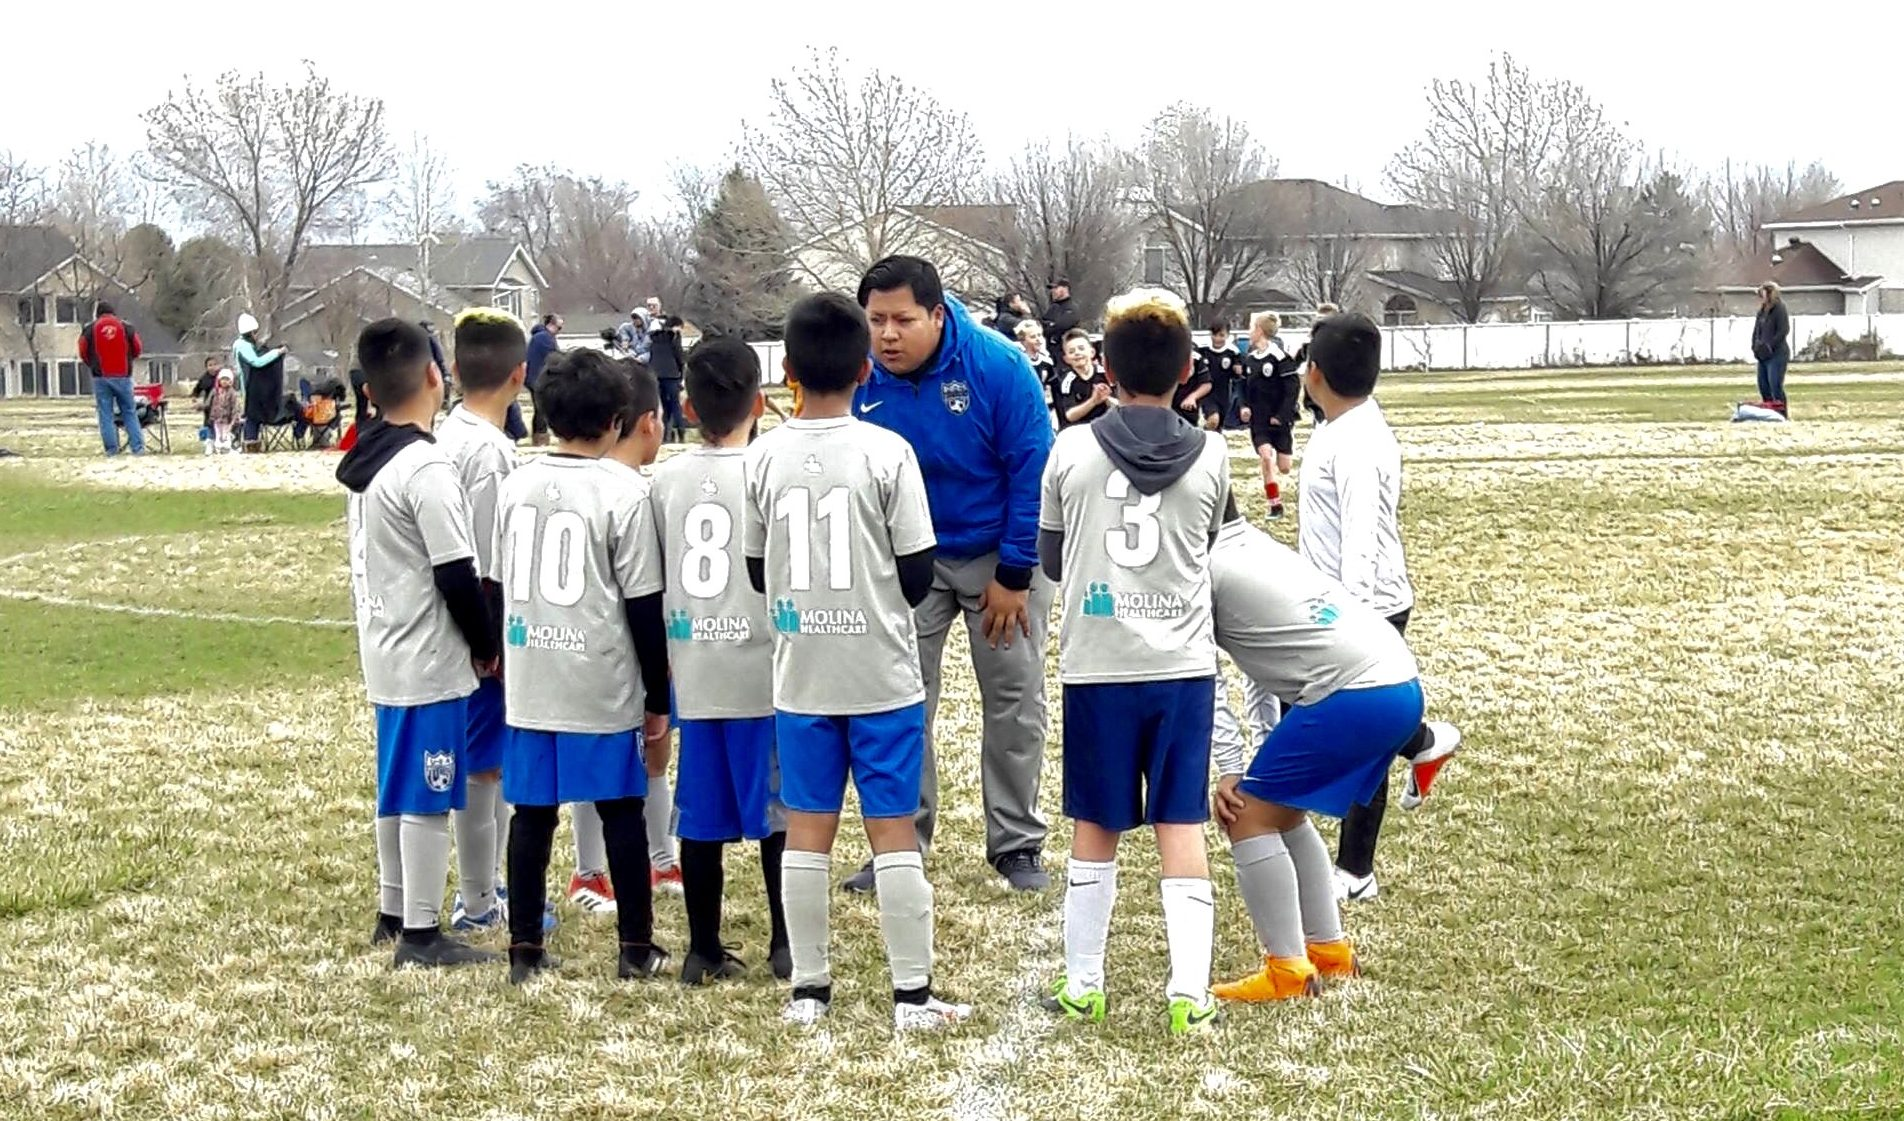 Coach talking to young soccer players on field